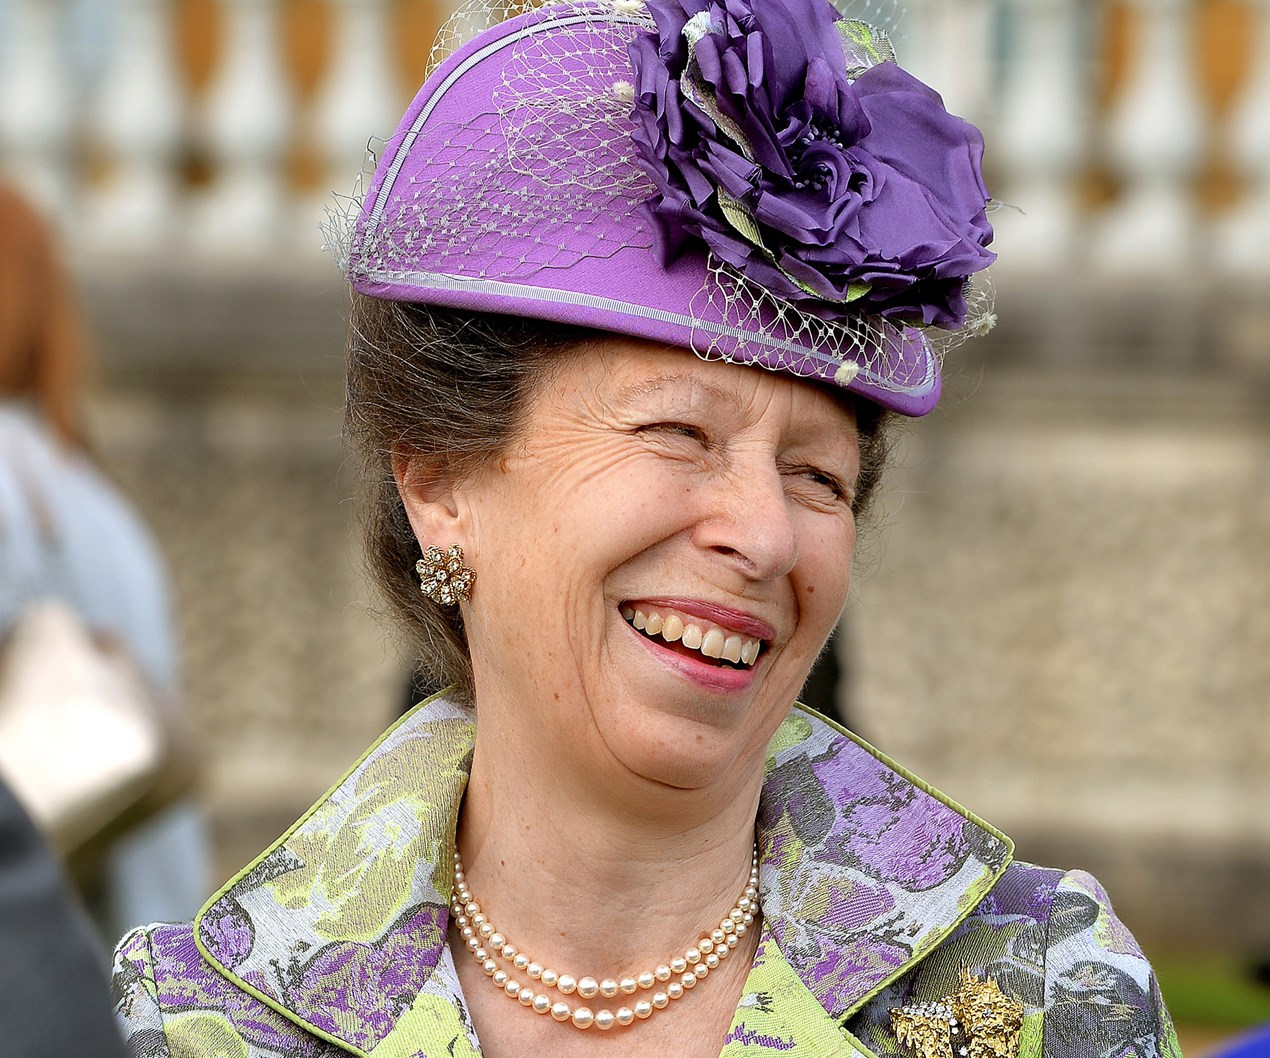 Guests at royal garden party treated to a rare Princess Anne smile